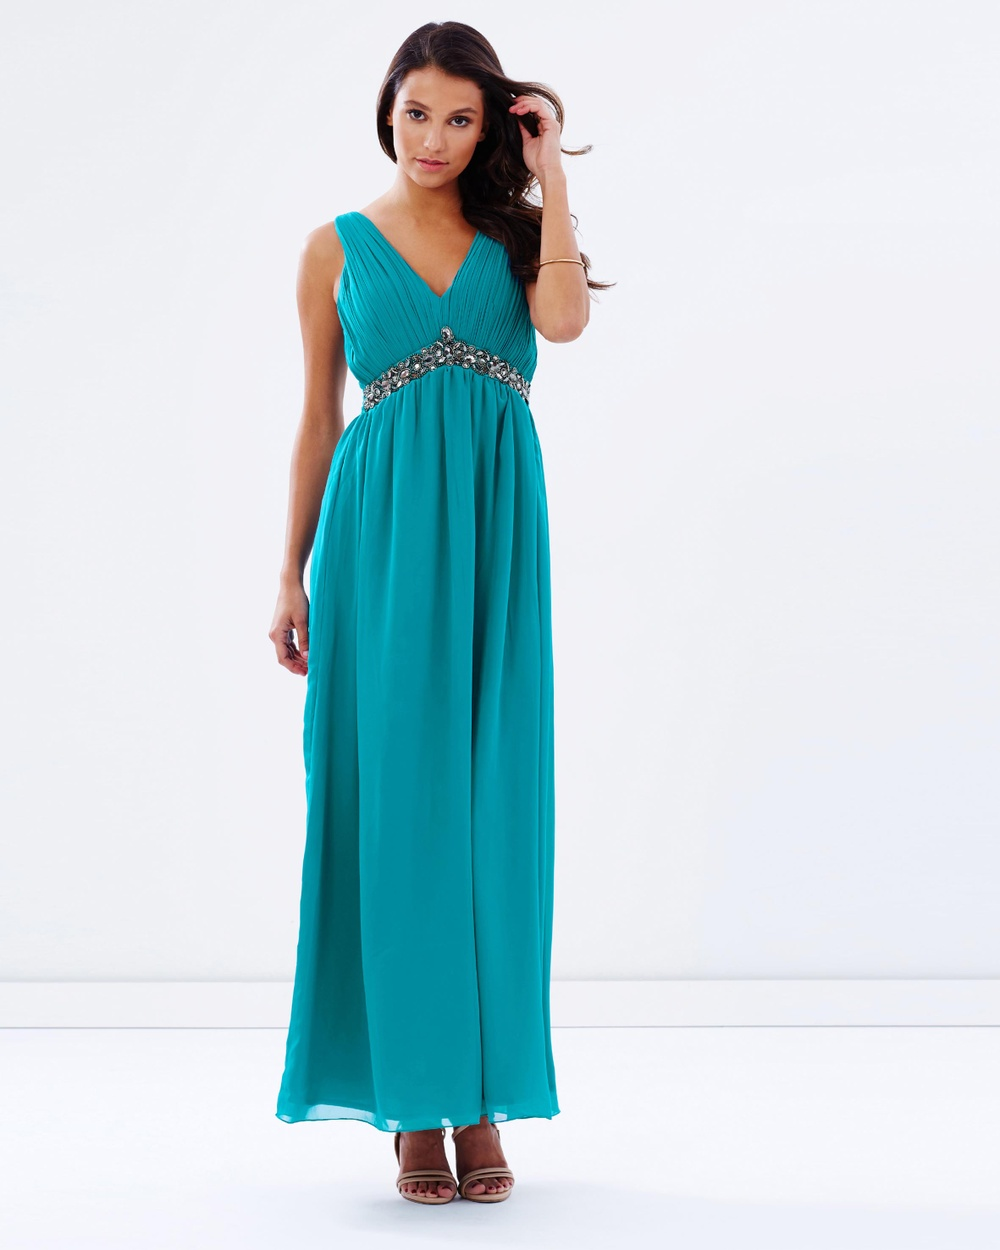 Little Mistress Embellished Waist Maxi Dress Bridesmaid Dresses Turquoise Embellished Waist Maxi Dress